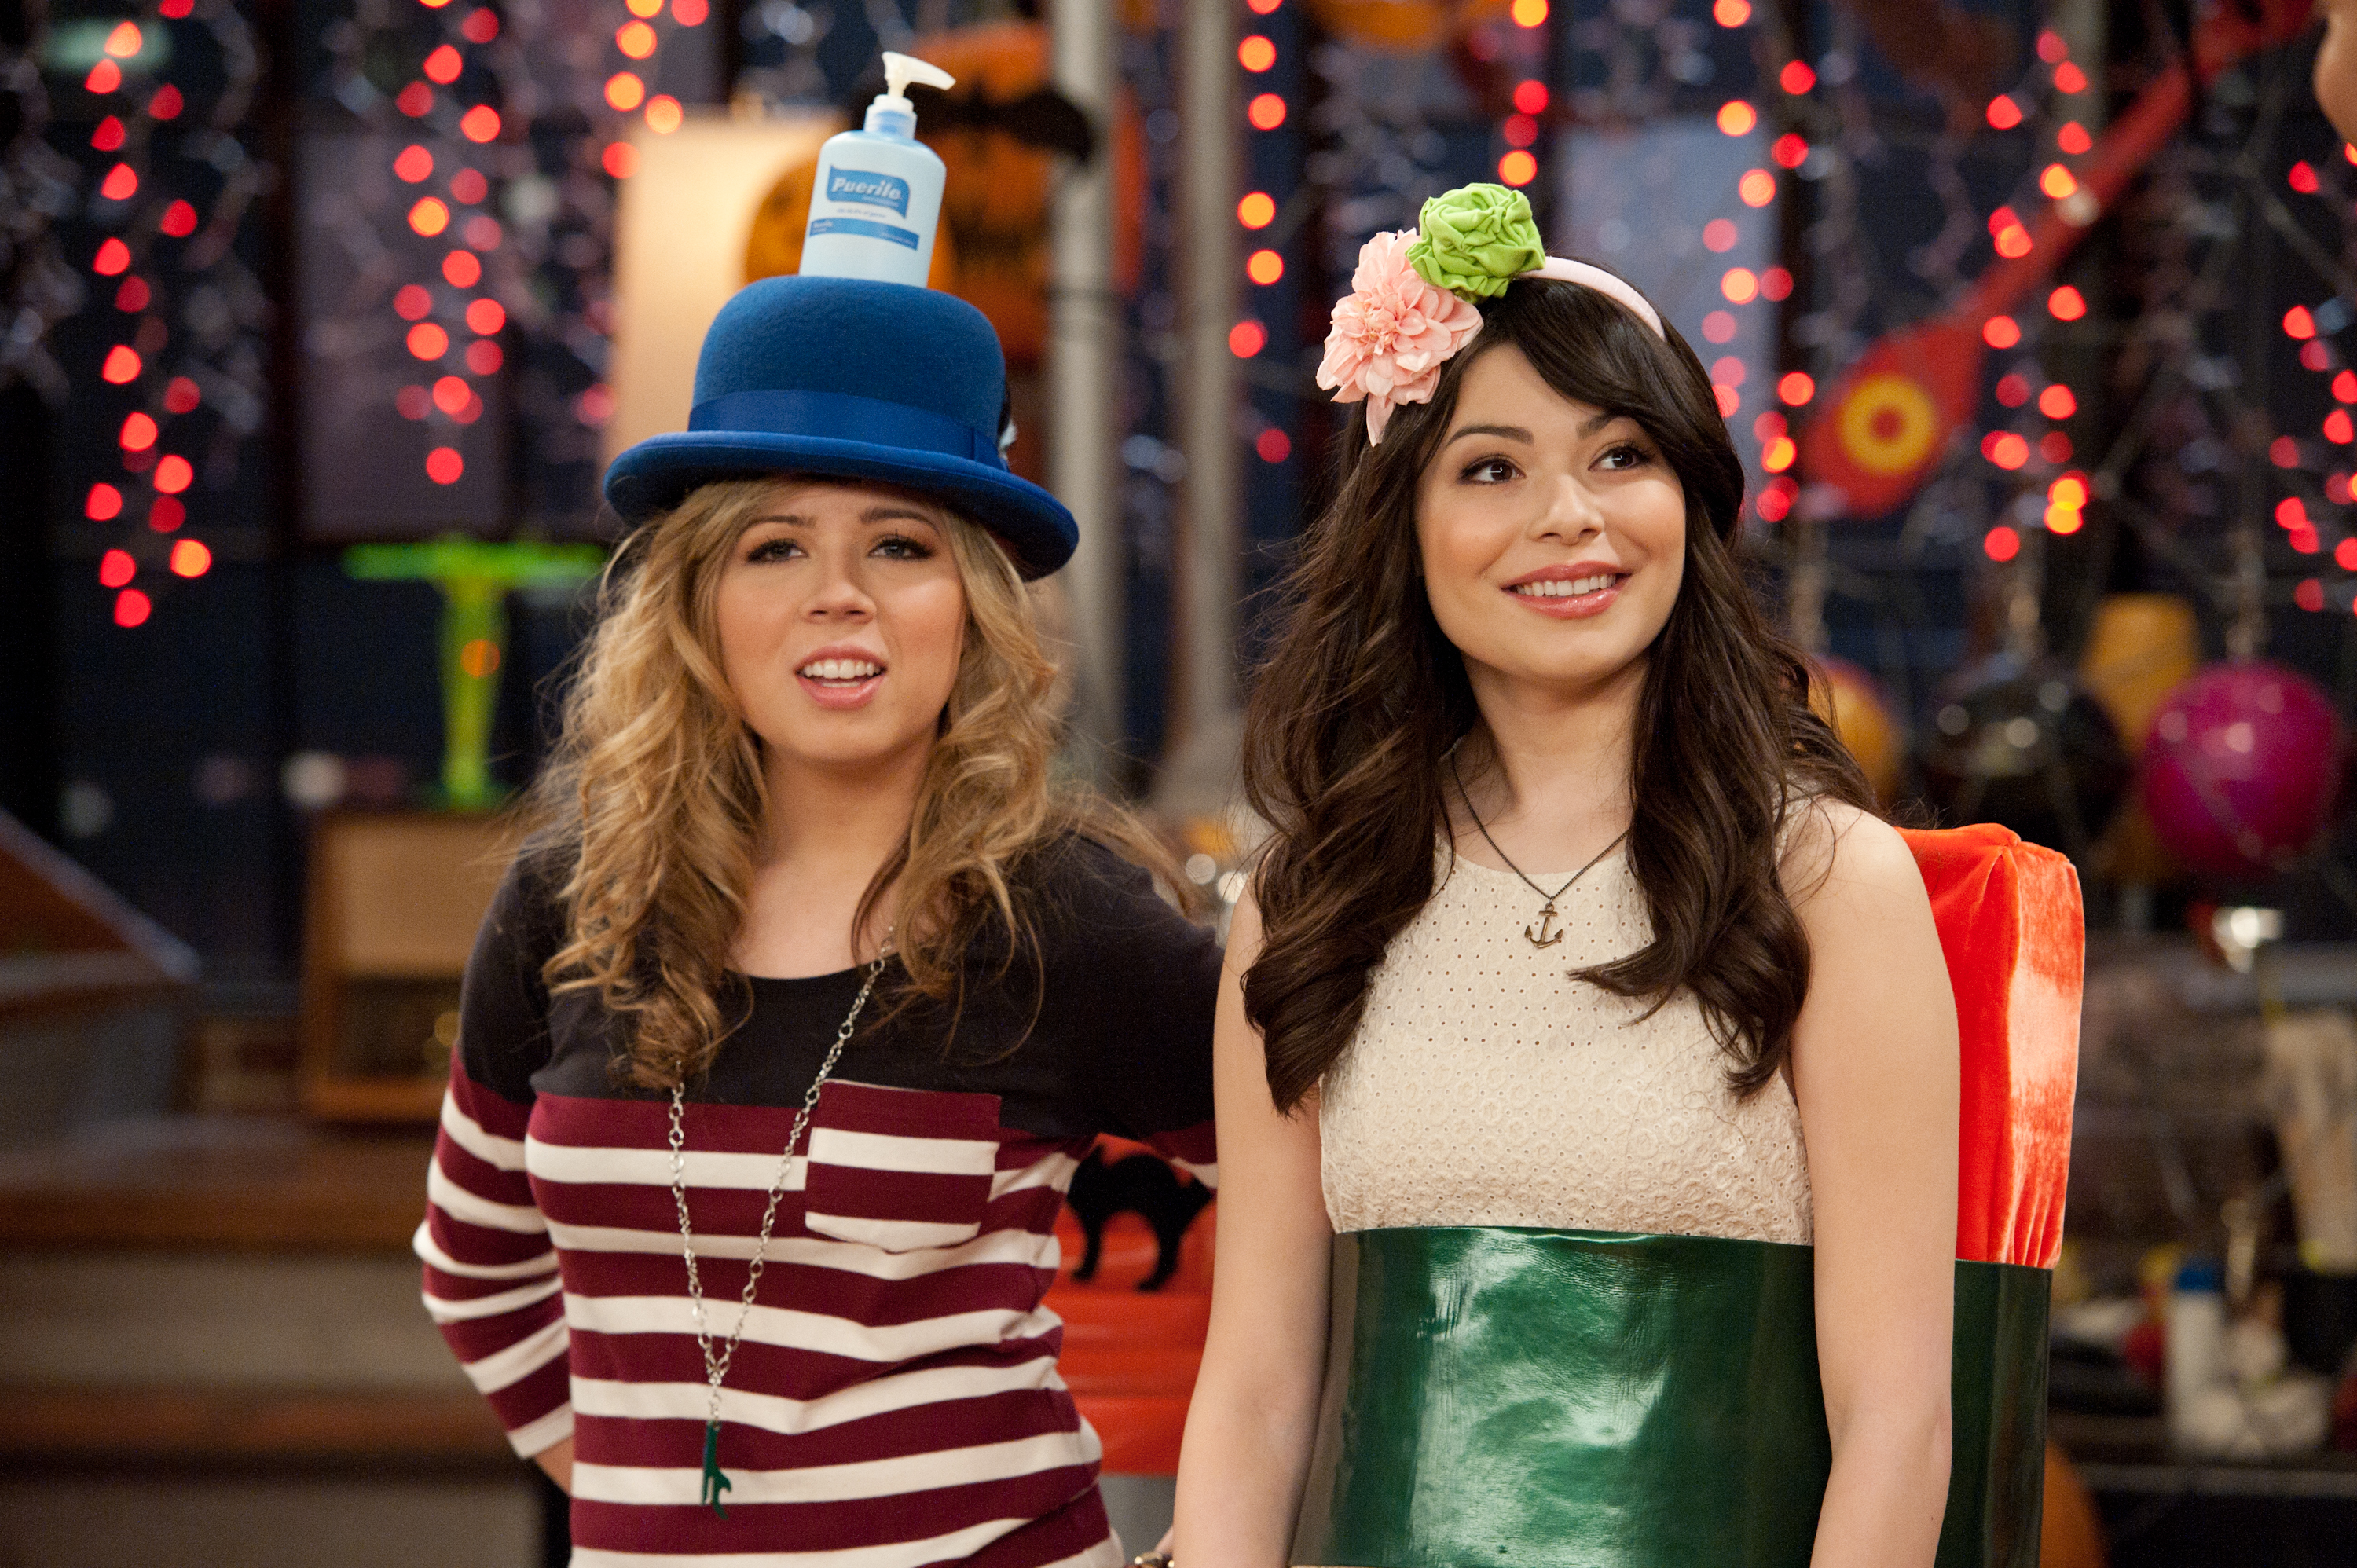 """There was an """"iCarly"""" reunion, and it happened in a place you wouldn't expect"""